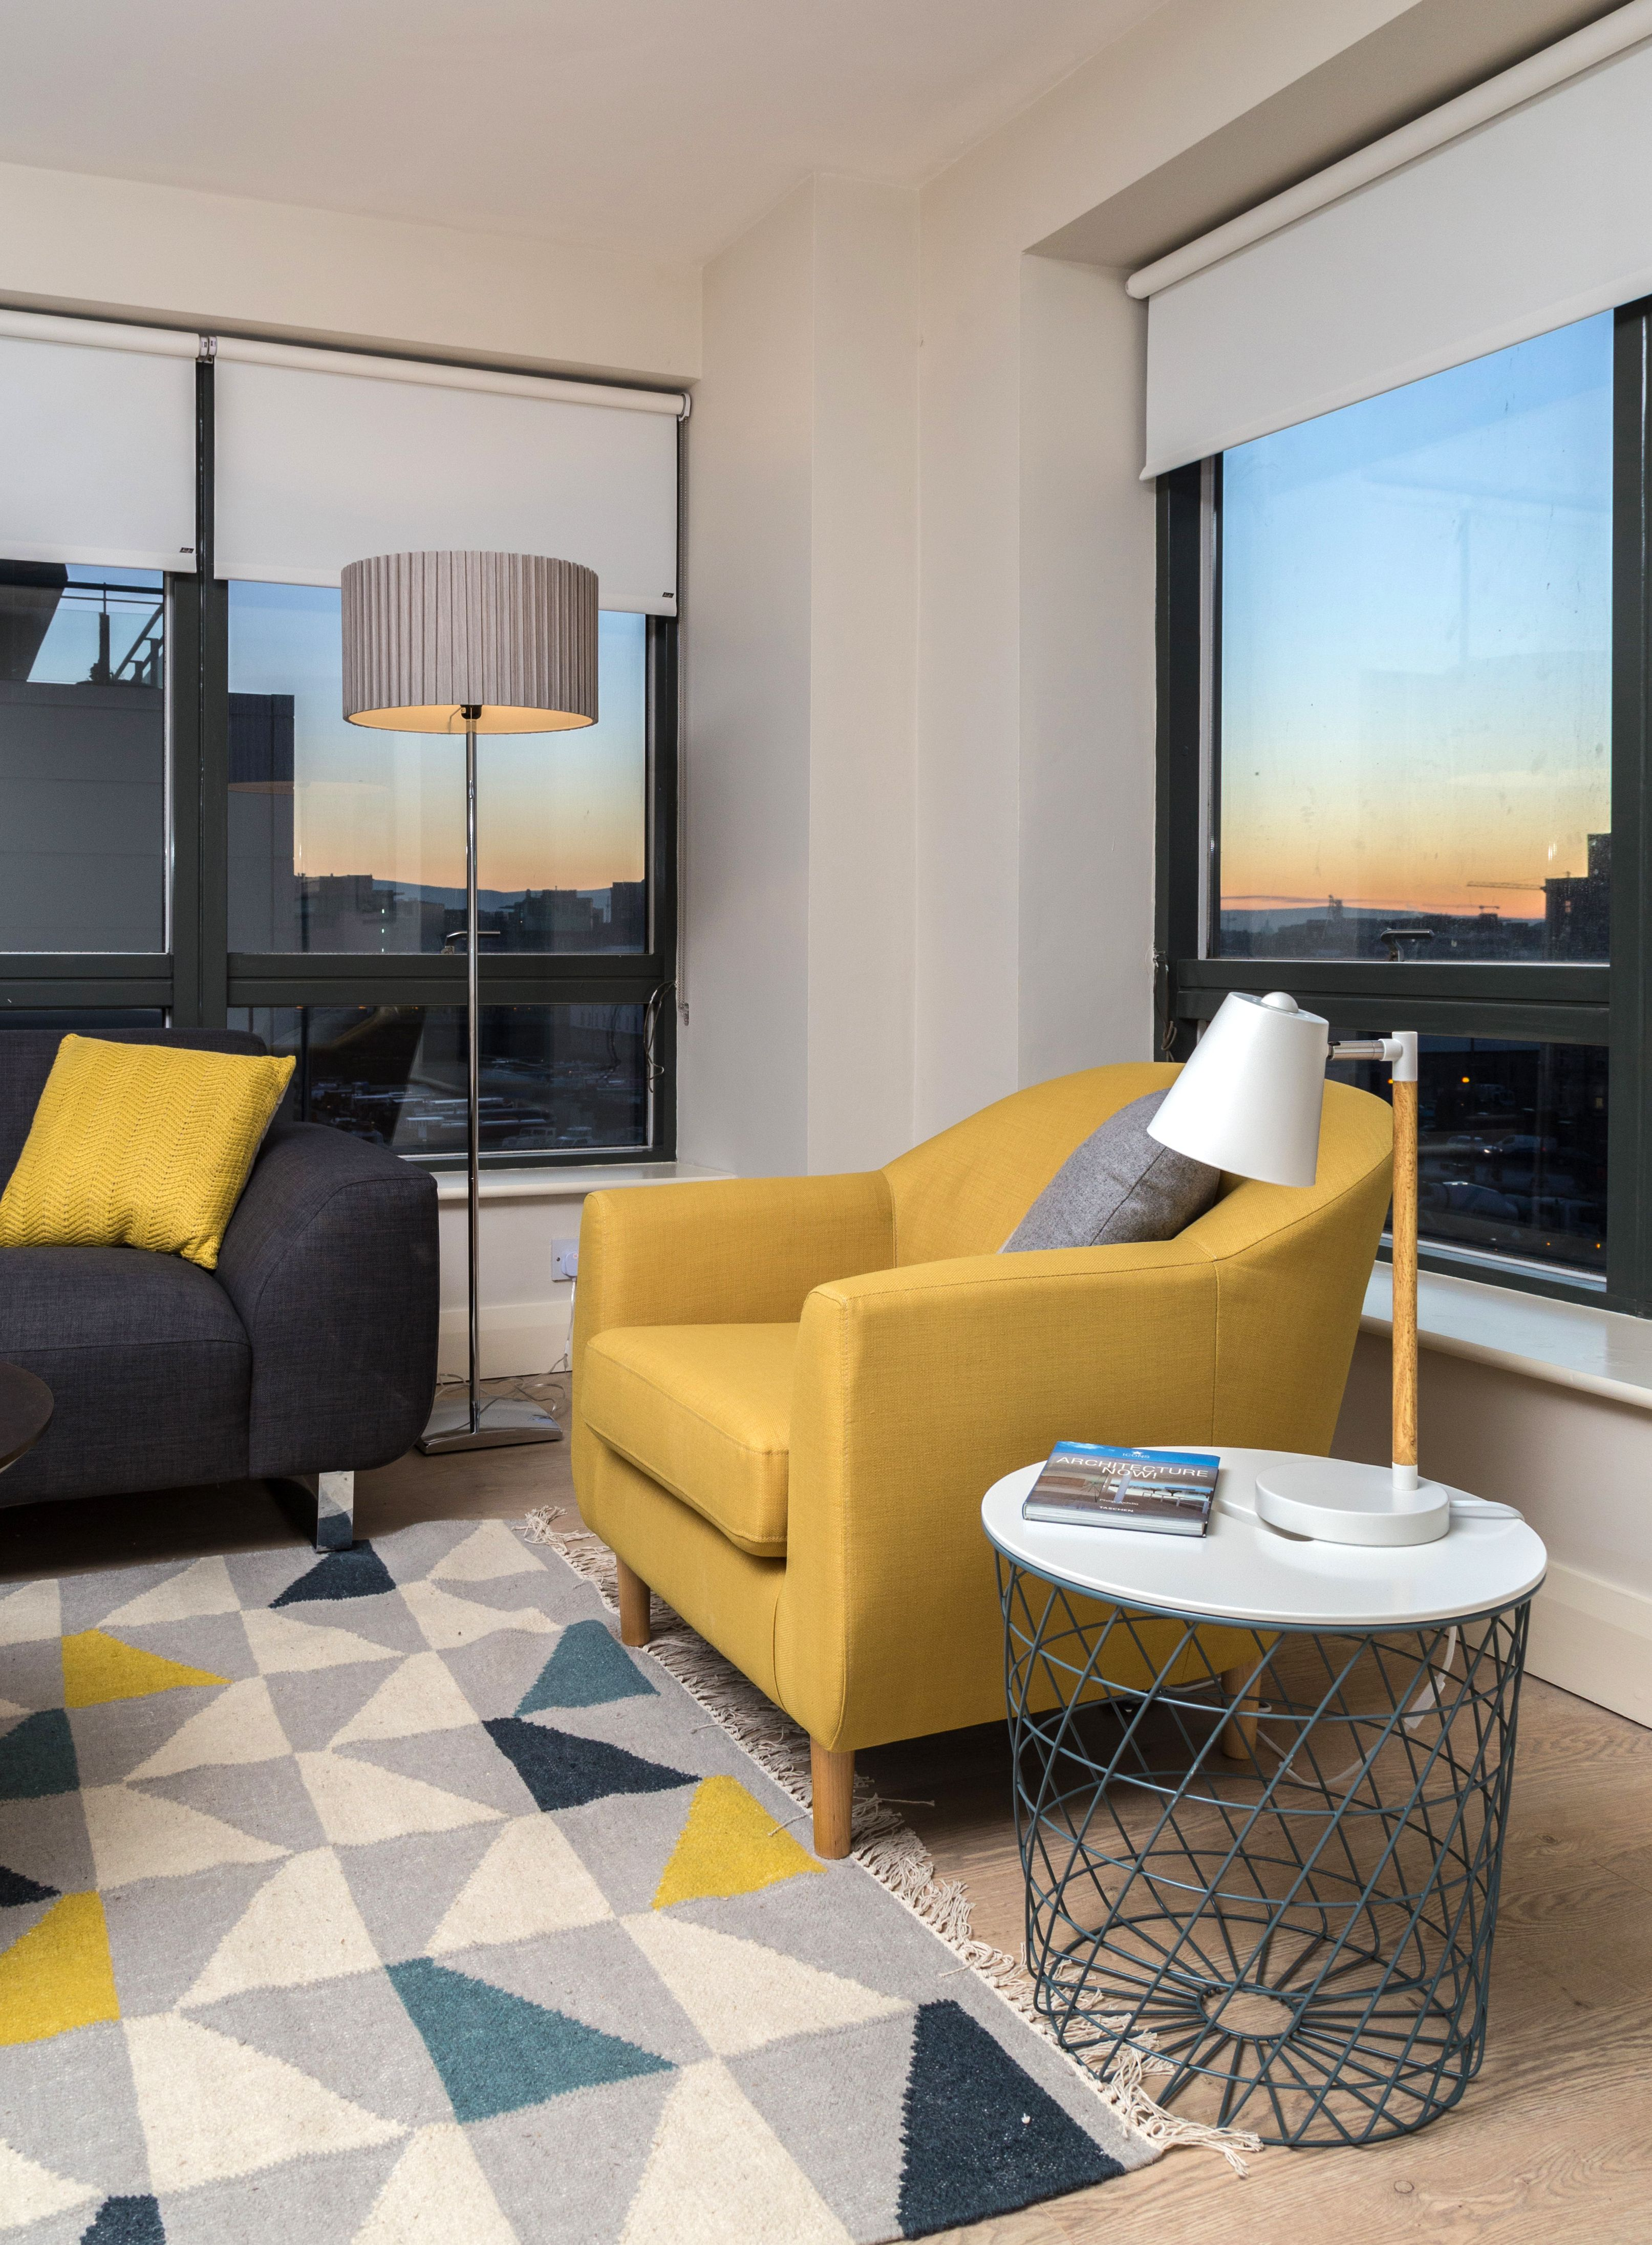 Residential Fit Out Apartment Living Area Yellow Blue Teal Dfs Sofa Tubby Armchair Geometric Rug Solan Coffee Table Millennium Tower